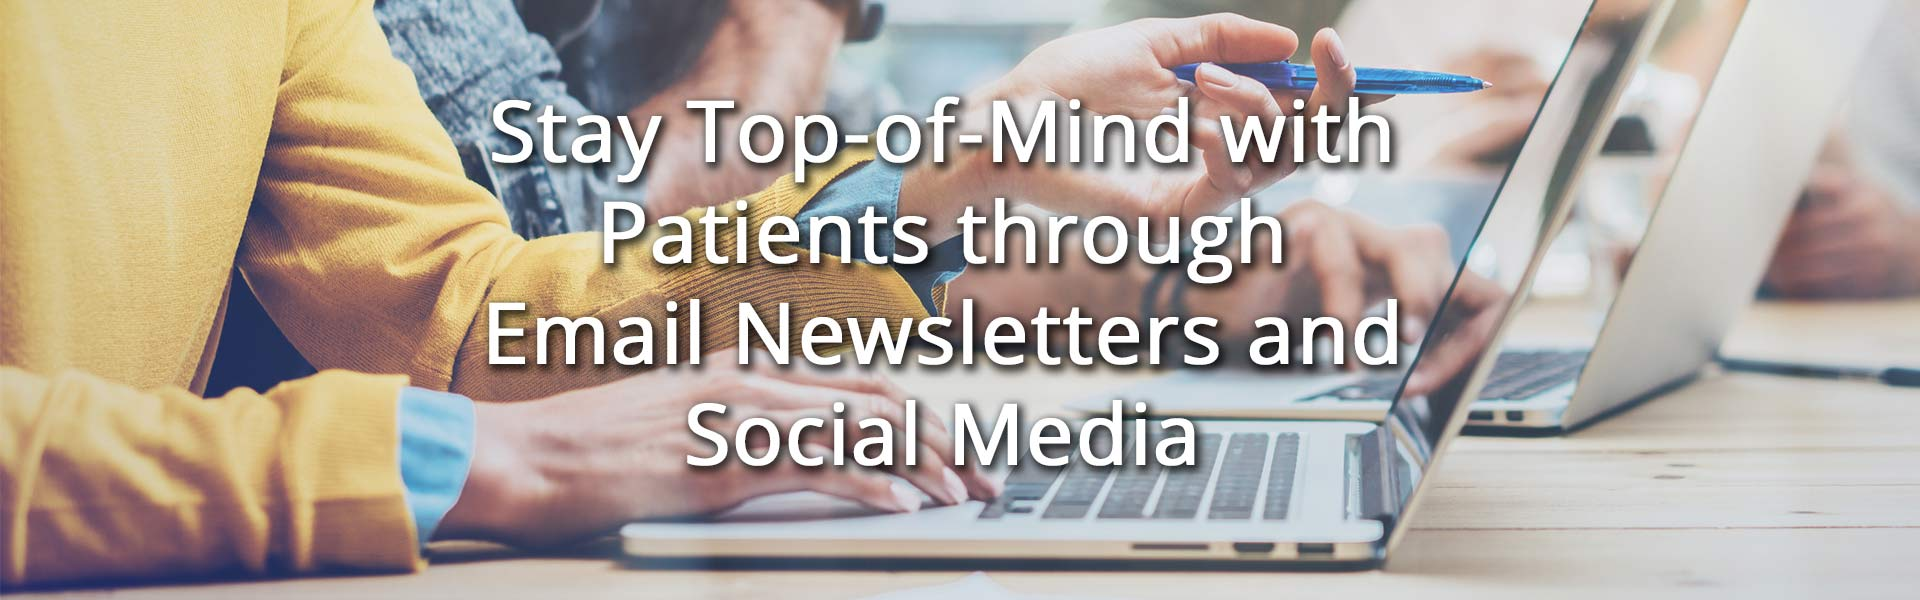 UpOnline Dental Marketing keeps you top-of-mind with patients